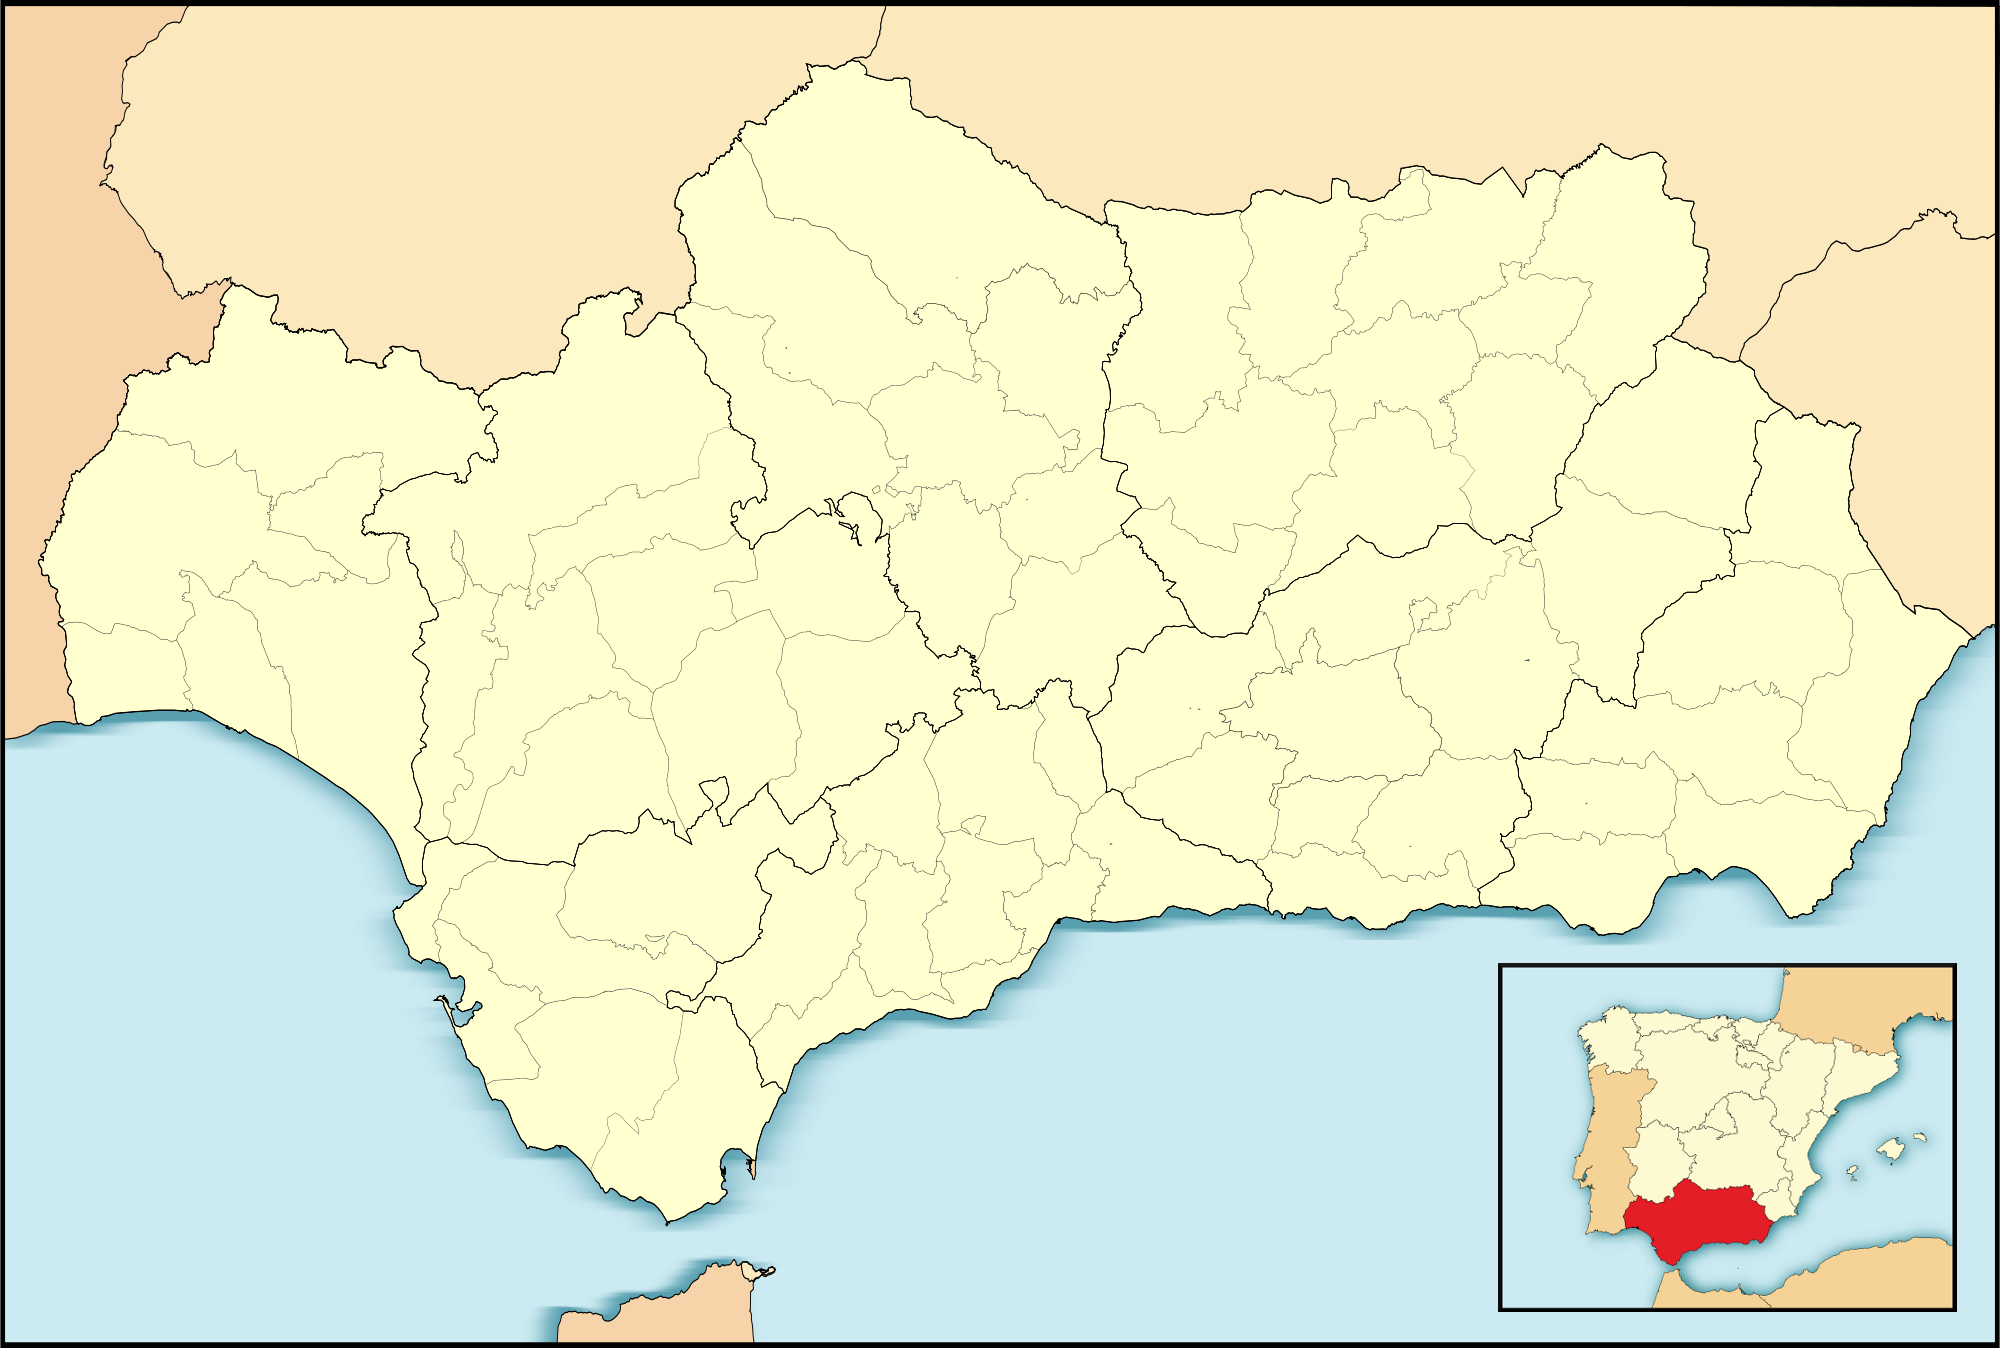 Málaga is located in Andalusia